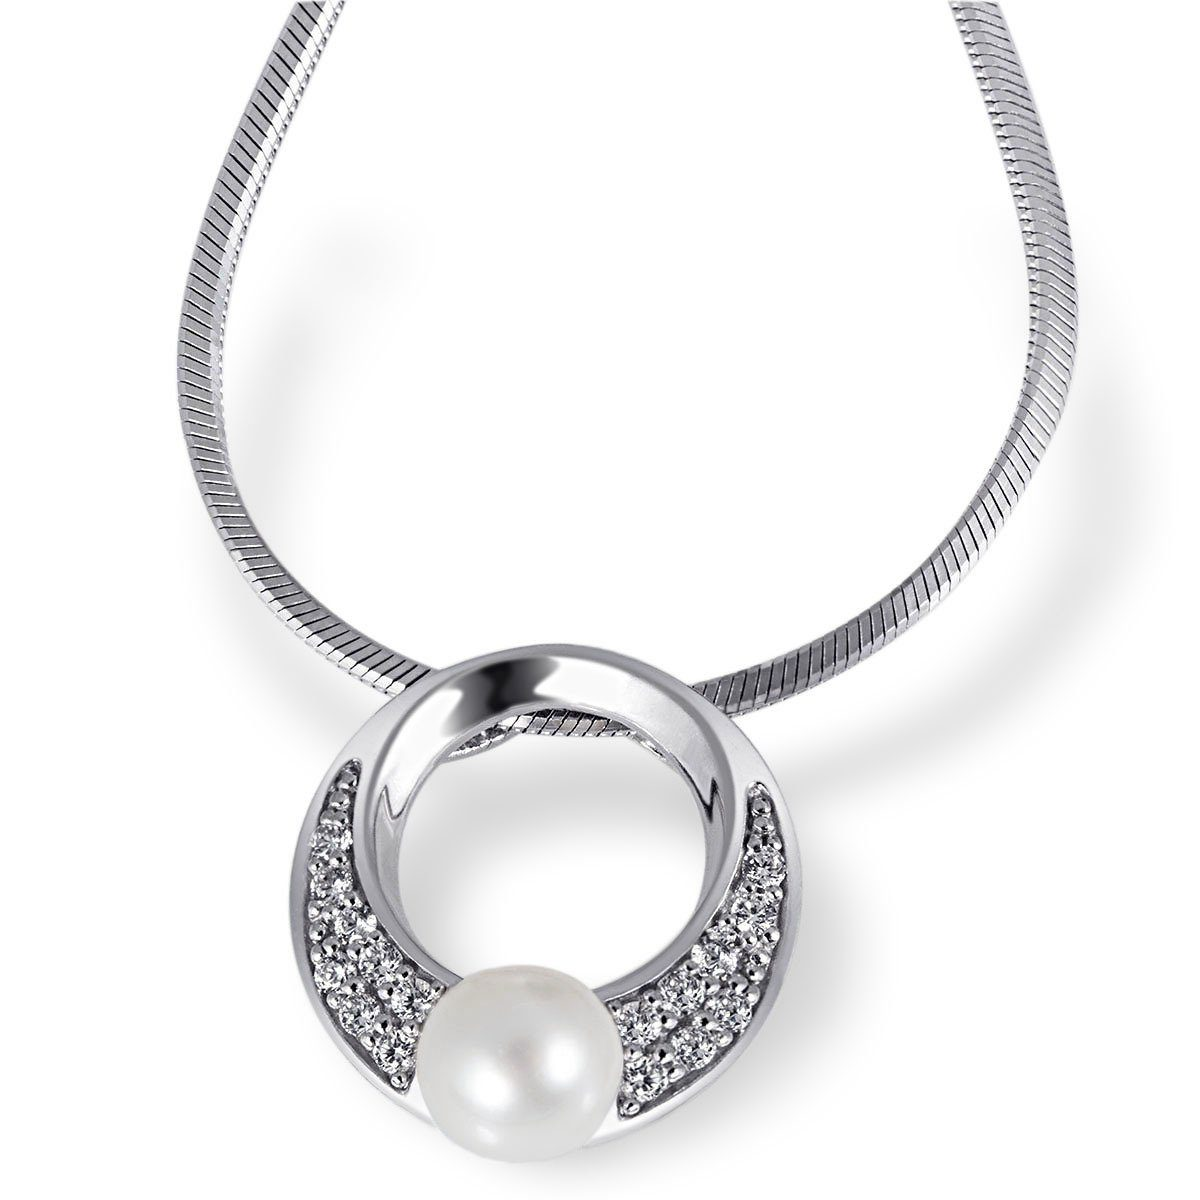 goldmaid Collier Tina 925/- Sterlingsilber 1 Perle 16 weiße Zirkonia